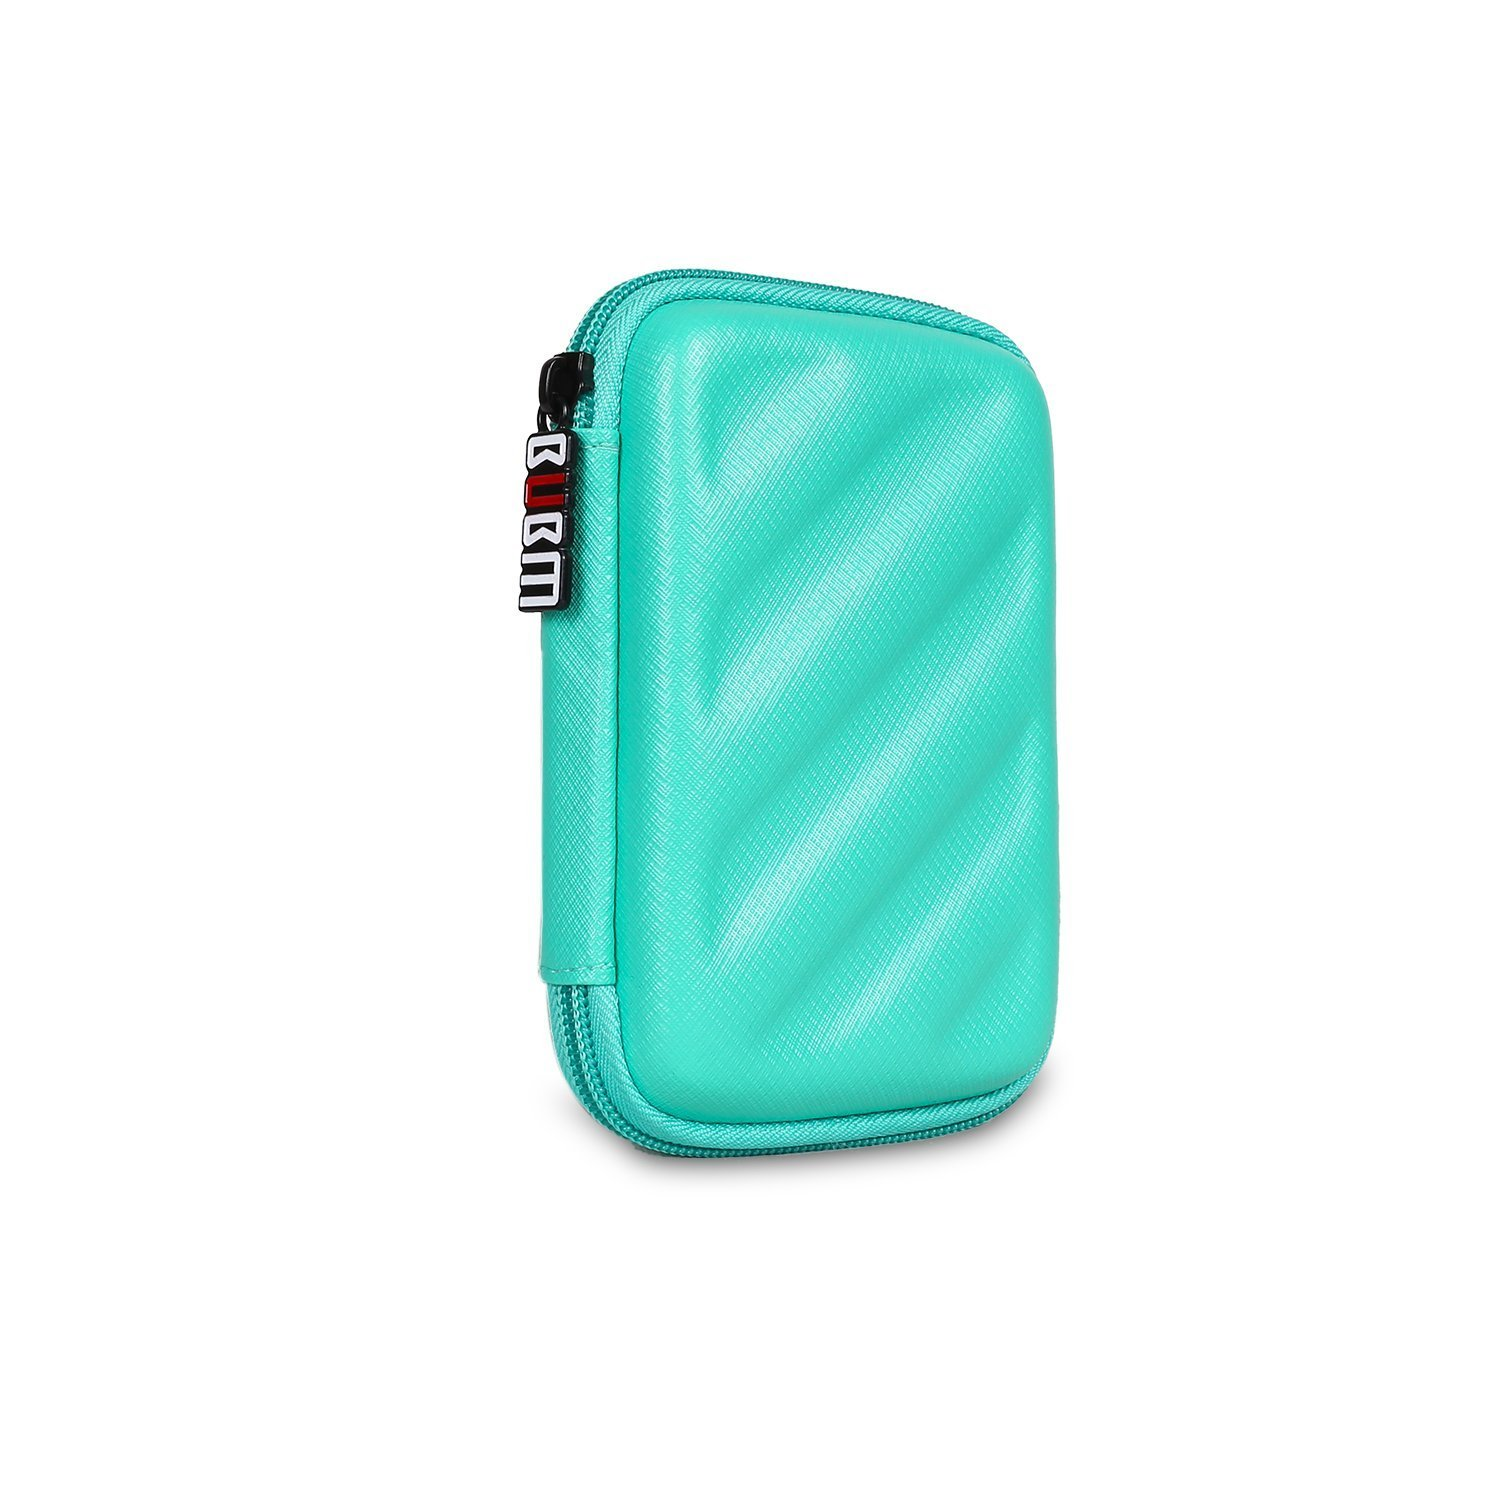 80off Bubm Portable Eva Hard Drive Carrying Case Pouch 25 Inch Computer Circuit Board Notebook Zazzle Green